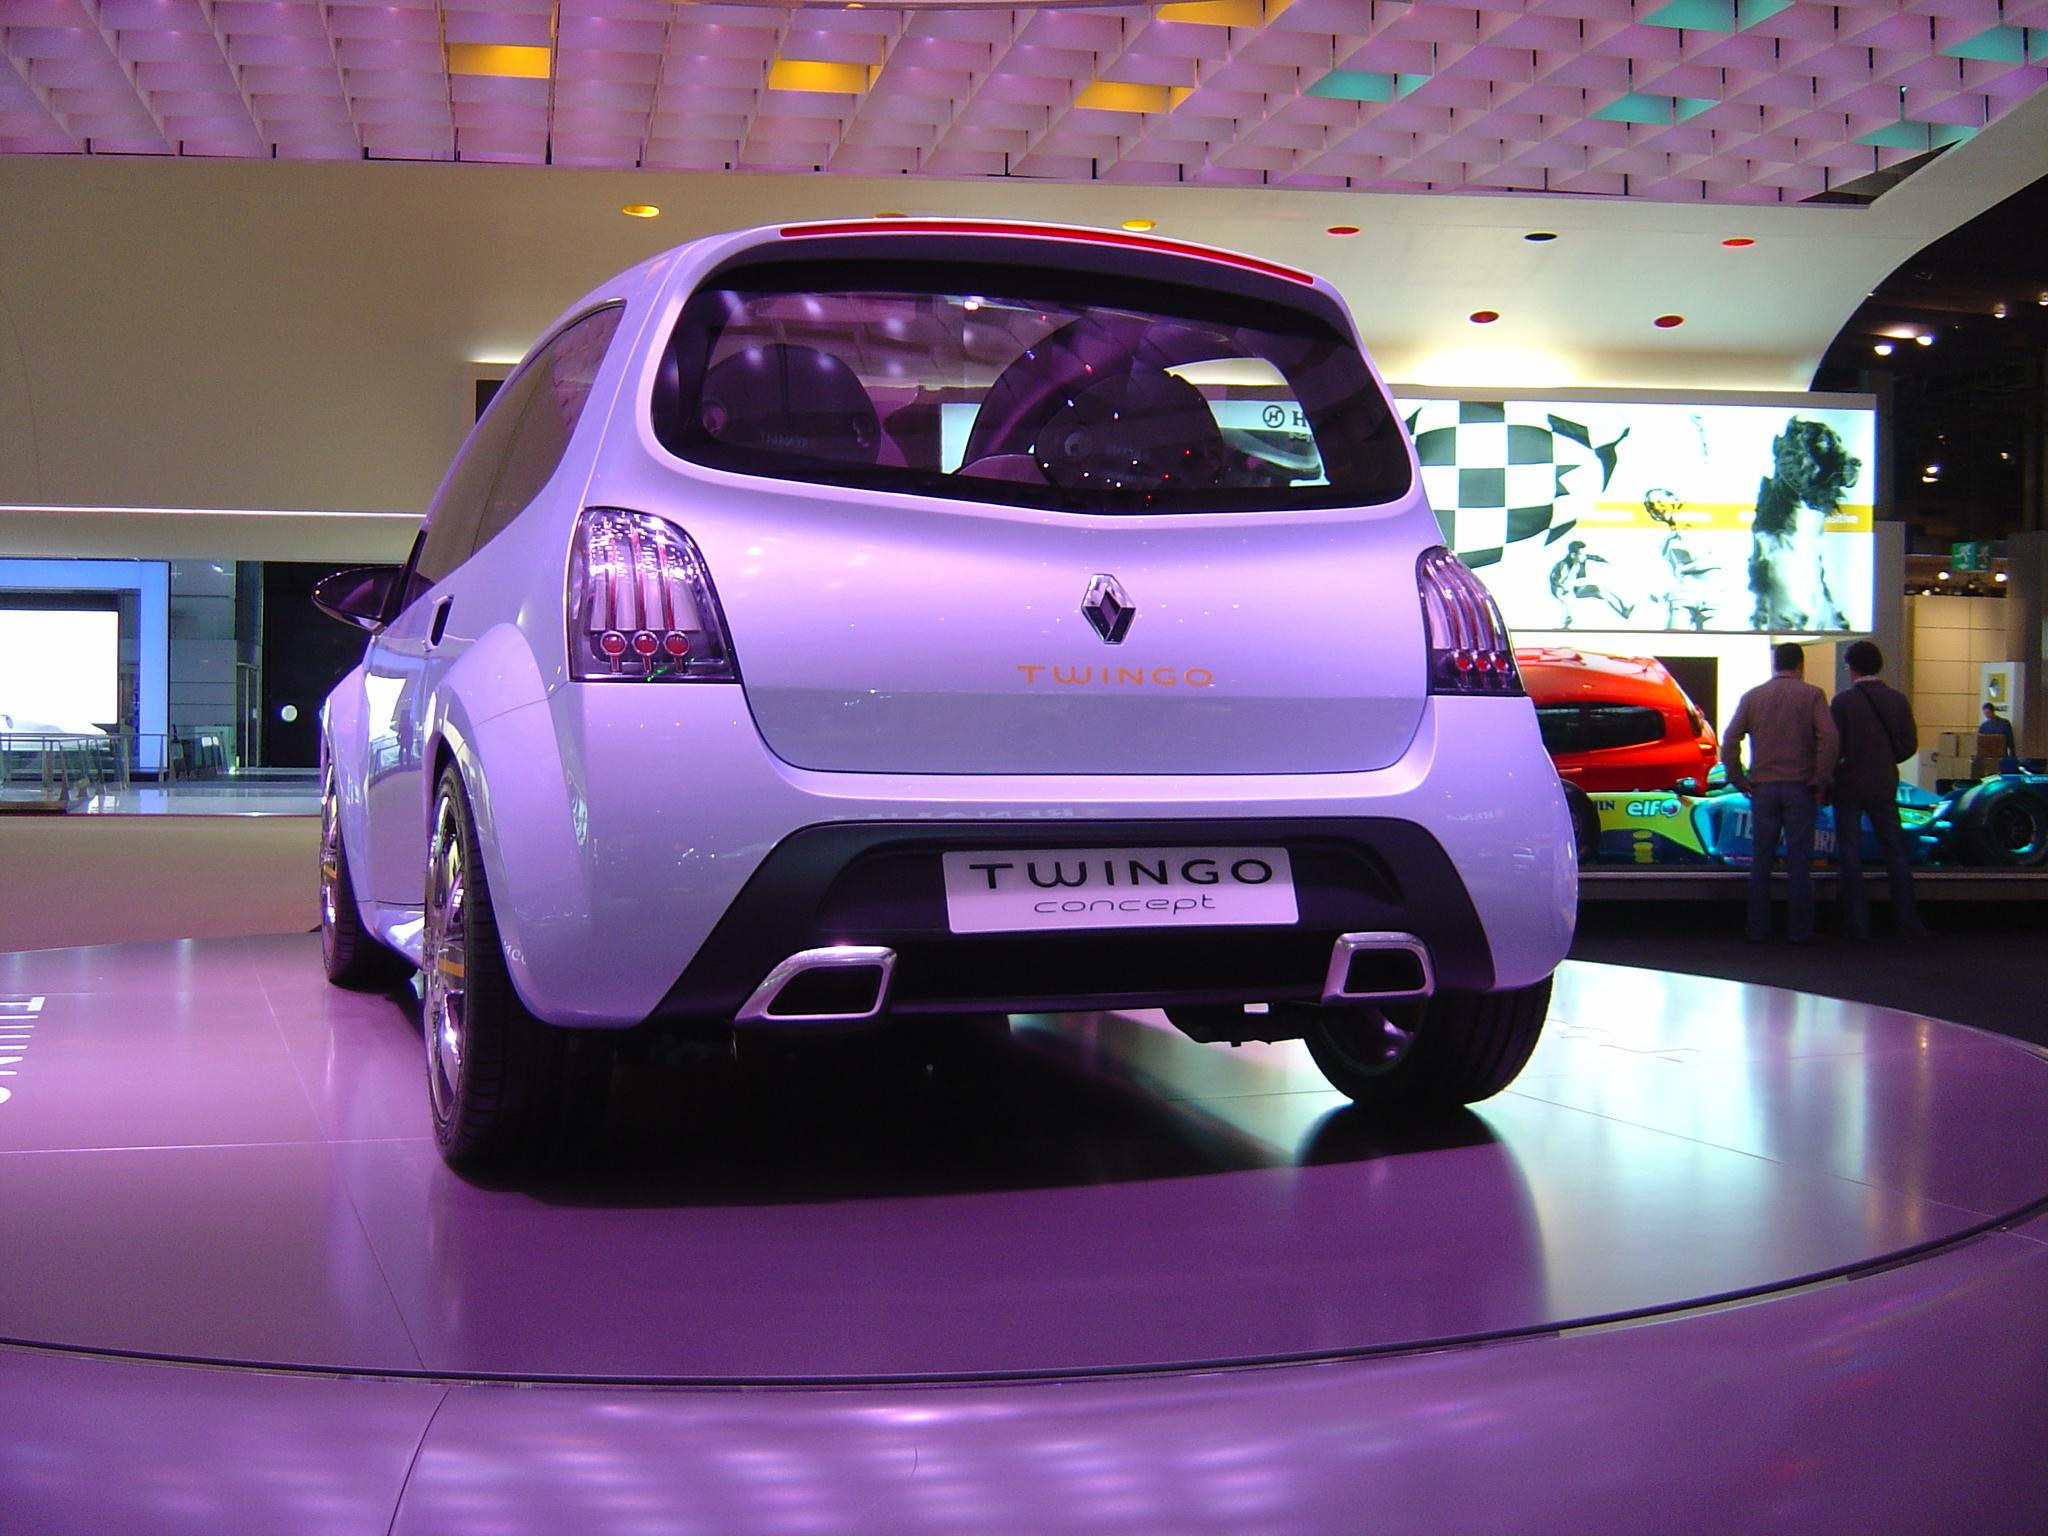 High End Cars >> 2007 Renault Twingo Review - Top Speed